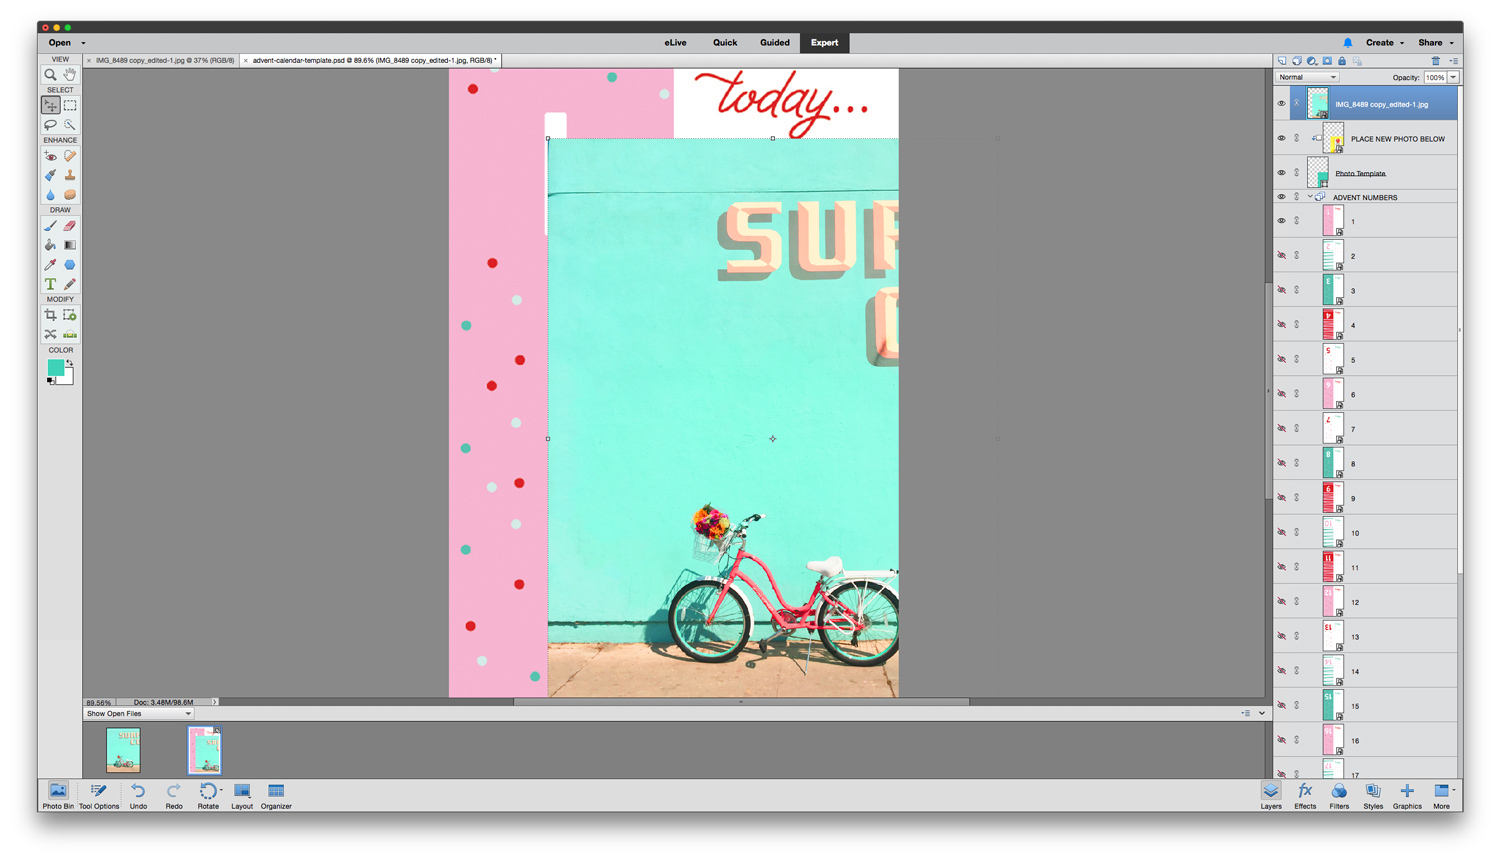 Create your own custom advent calendar using Adobe Photoshop Elements 15